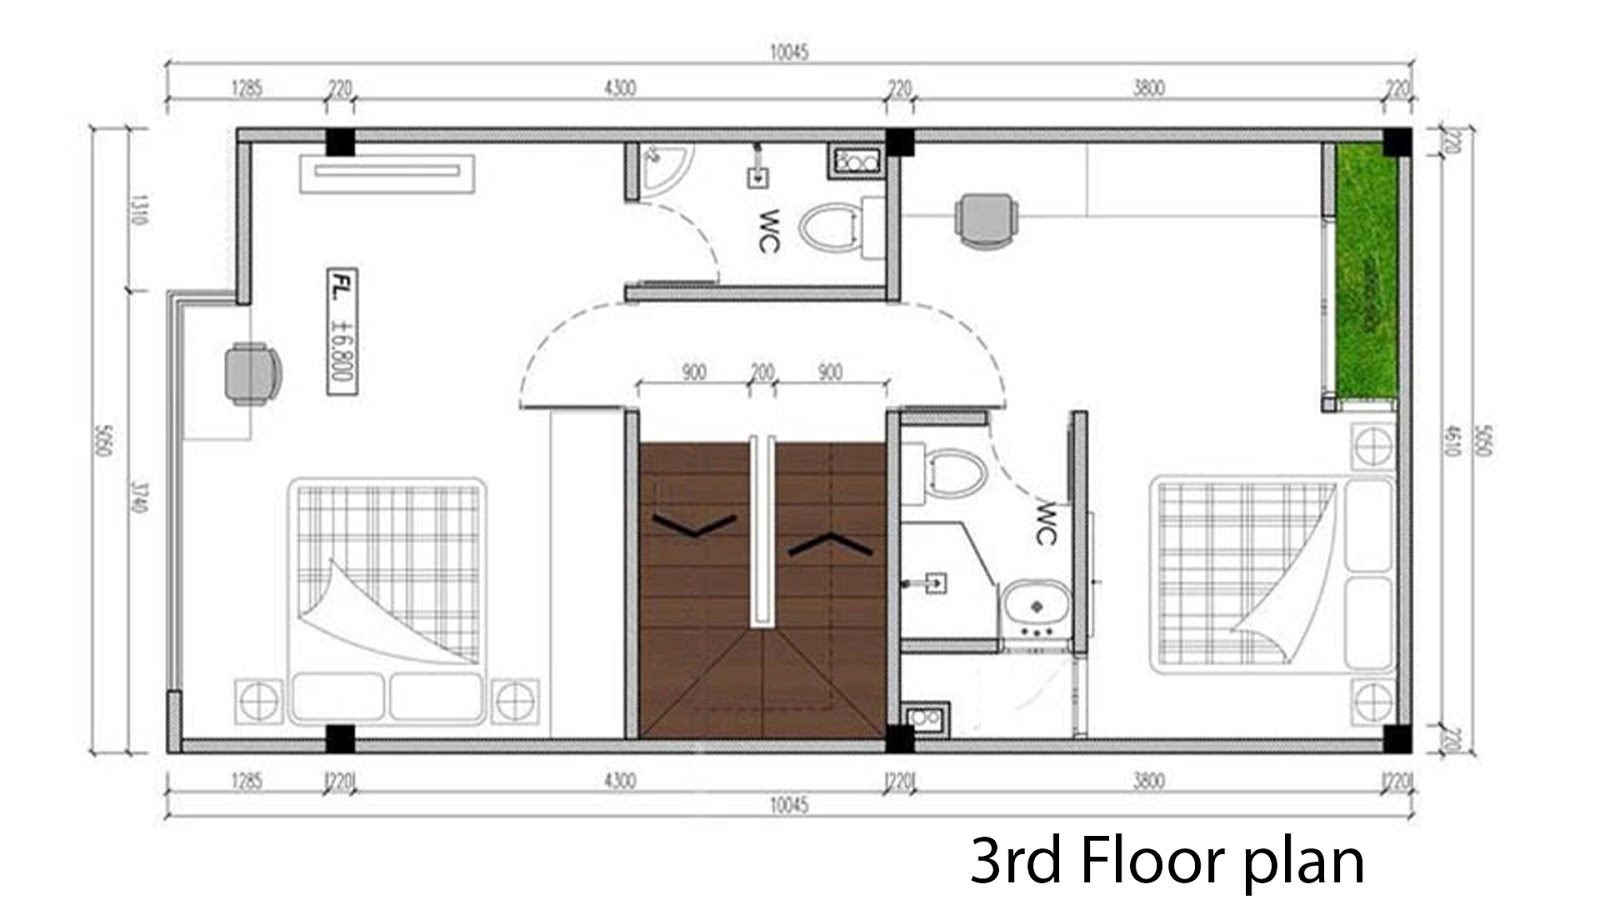 facebook group home design idea more plans download on youtube sam phoas channel if you think this plan is useful for you please like and share